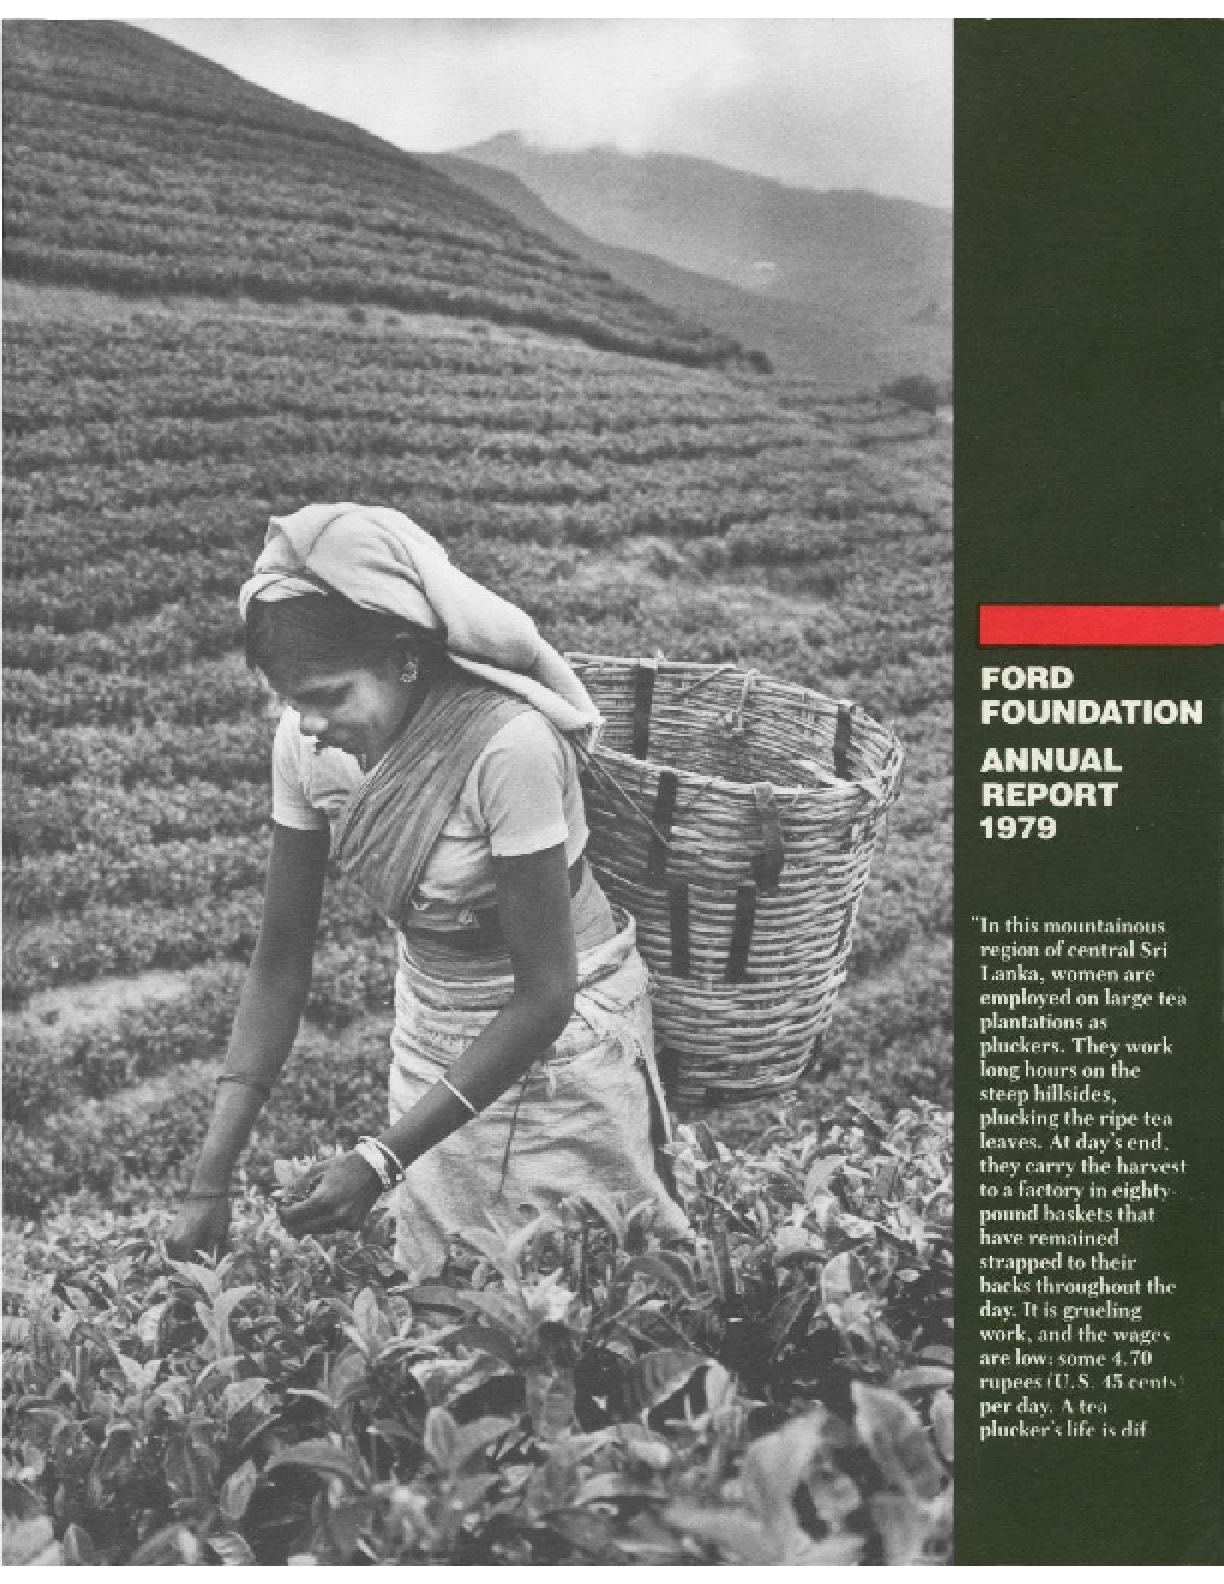 Ford Foundation - 1979 Annual Report